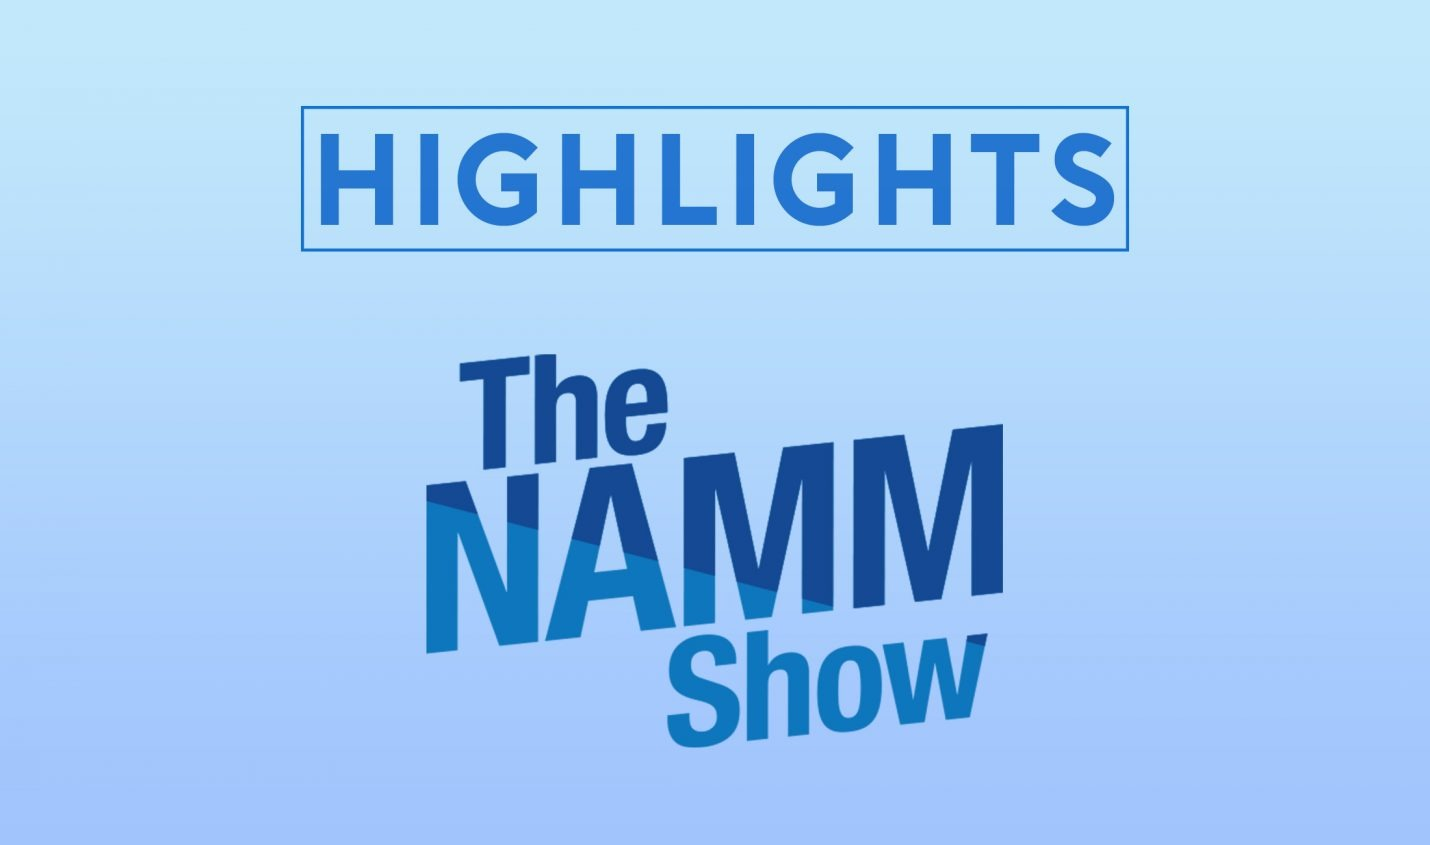 NAMM 2020: Die Highlights für DJs & ProduzentInnen - DJ LAB